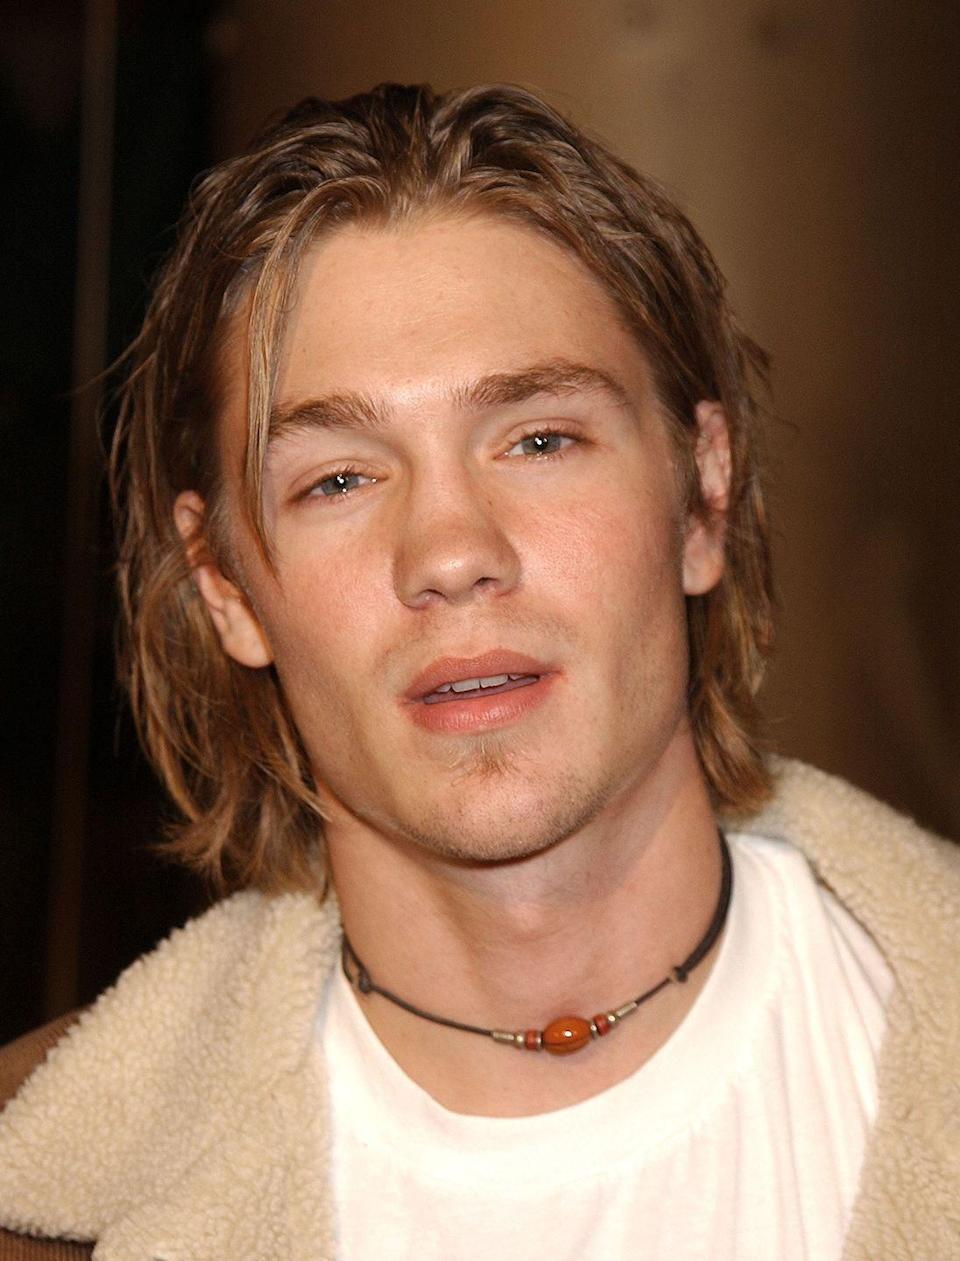 <p>Audiences were introduced to Chad Michael Murray—and his chin length locks—in his first major film, <em>Freaky Friday</em>. But the long hair didn't last and Murray appeared in his next film with a much shorter 'do.  </p>